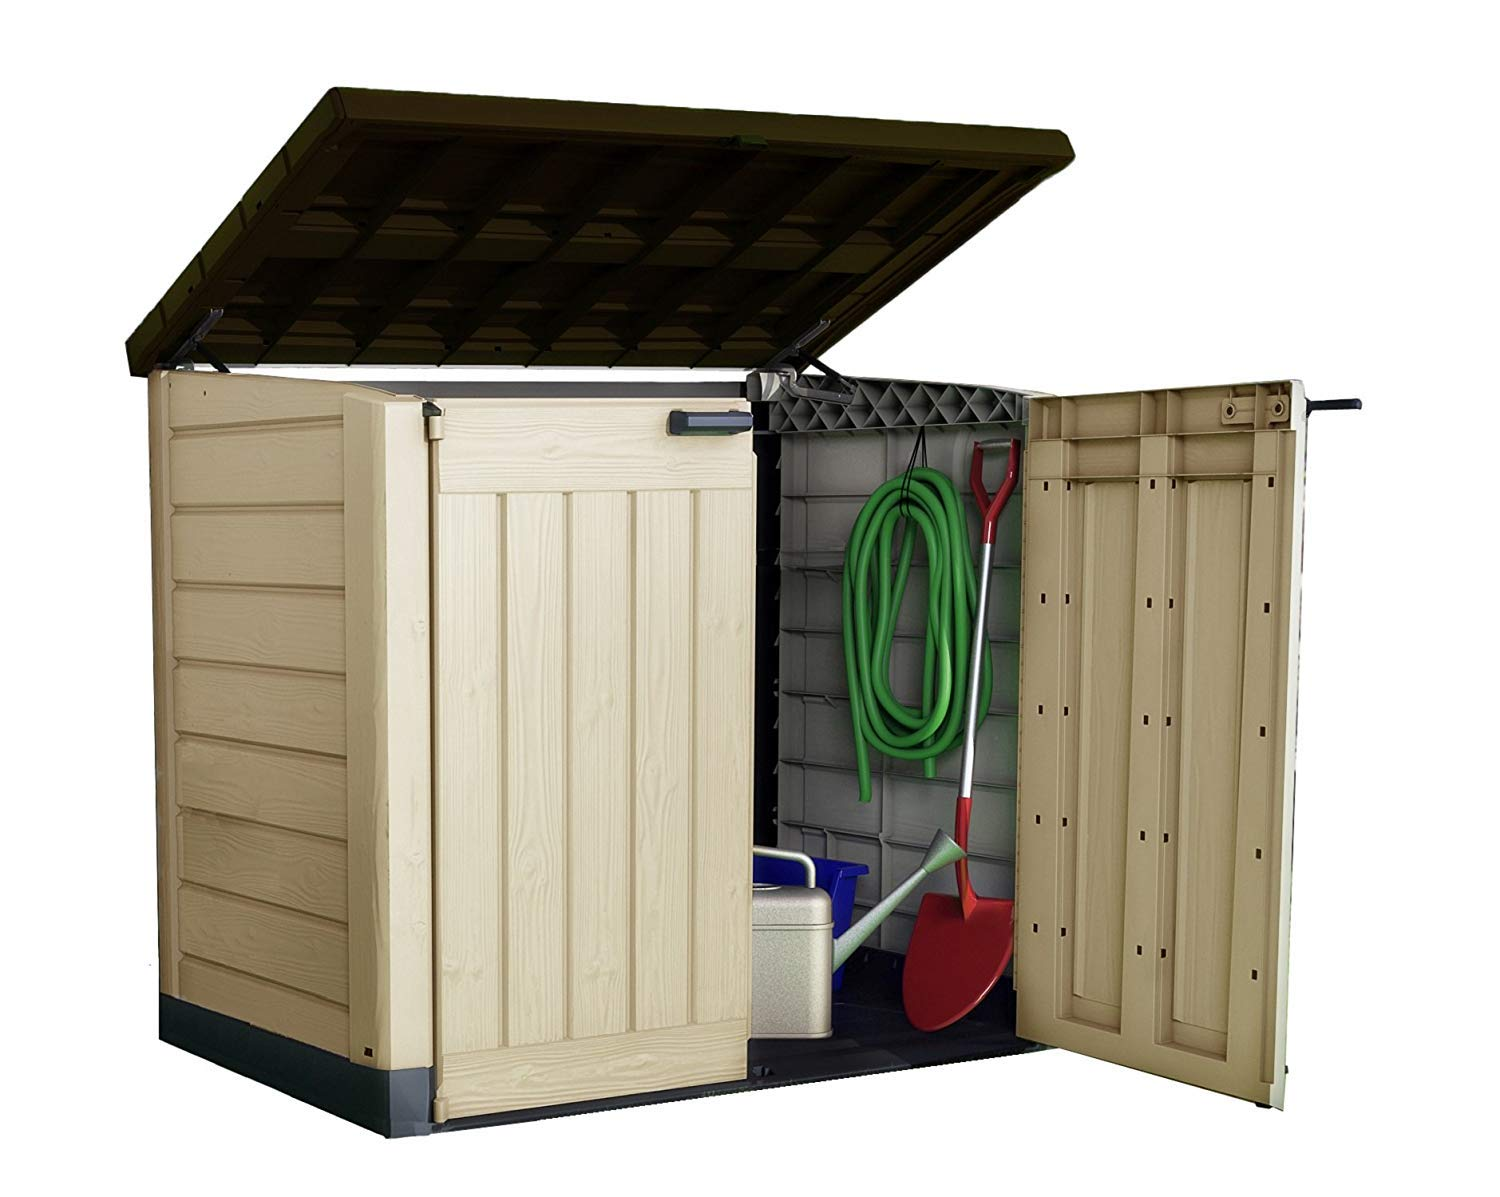 keter store it out plastic garden storage shed